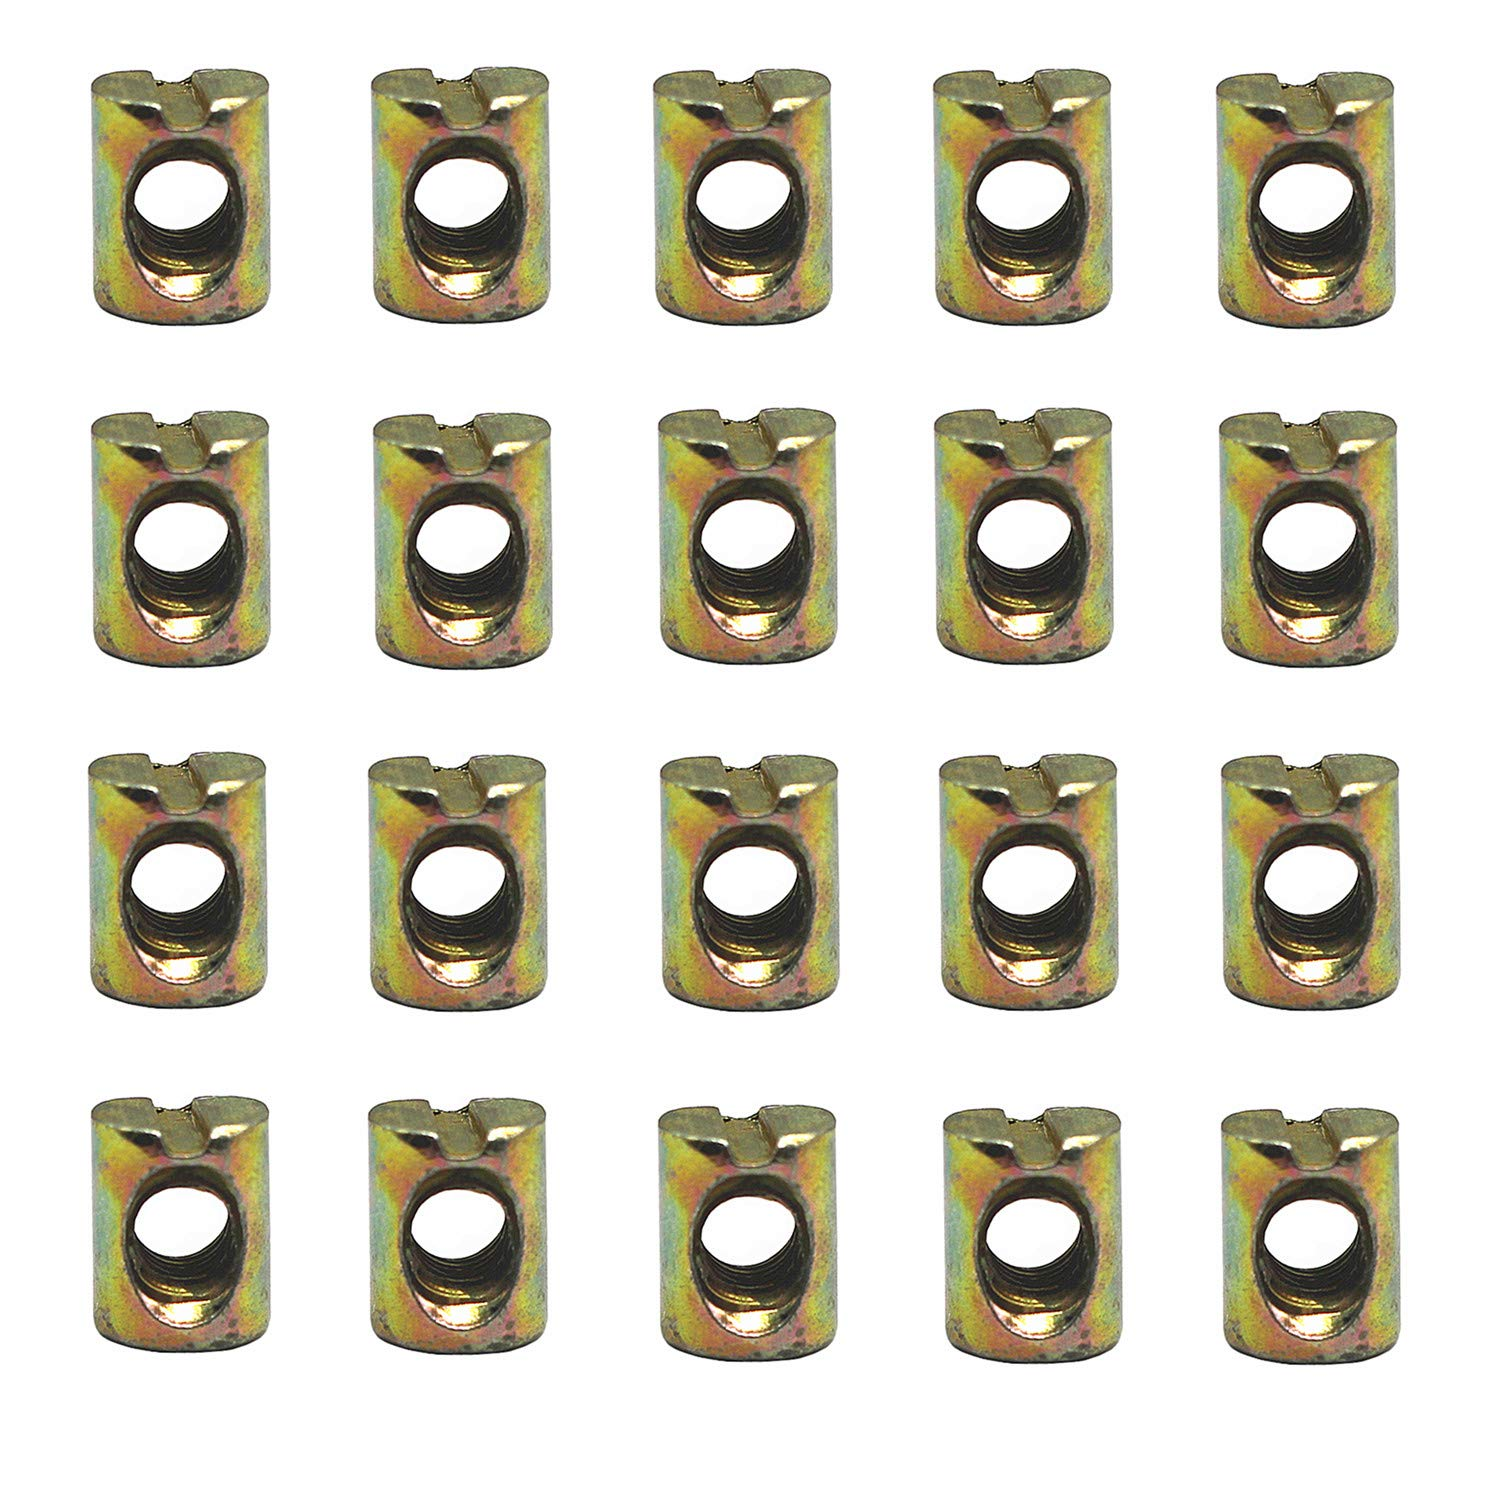 DD-life 50Pcs M6 Barrel Nuts Cross Dowels Slotted Nuts for Furniture Beds Crib Chairs, M6 x 12mm